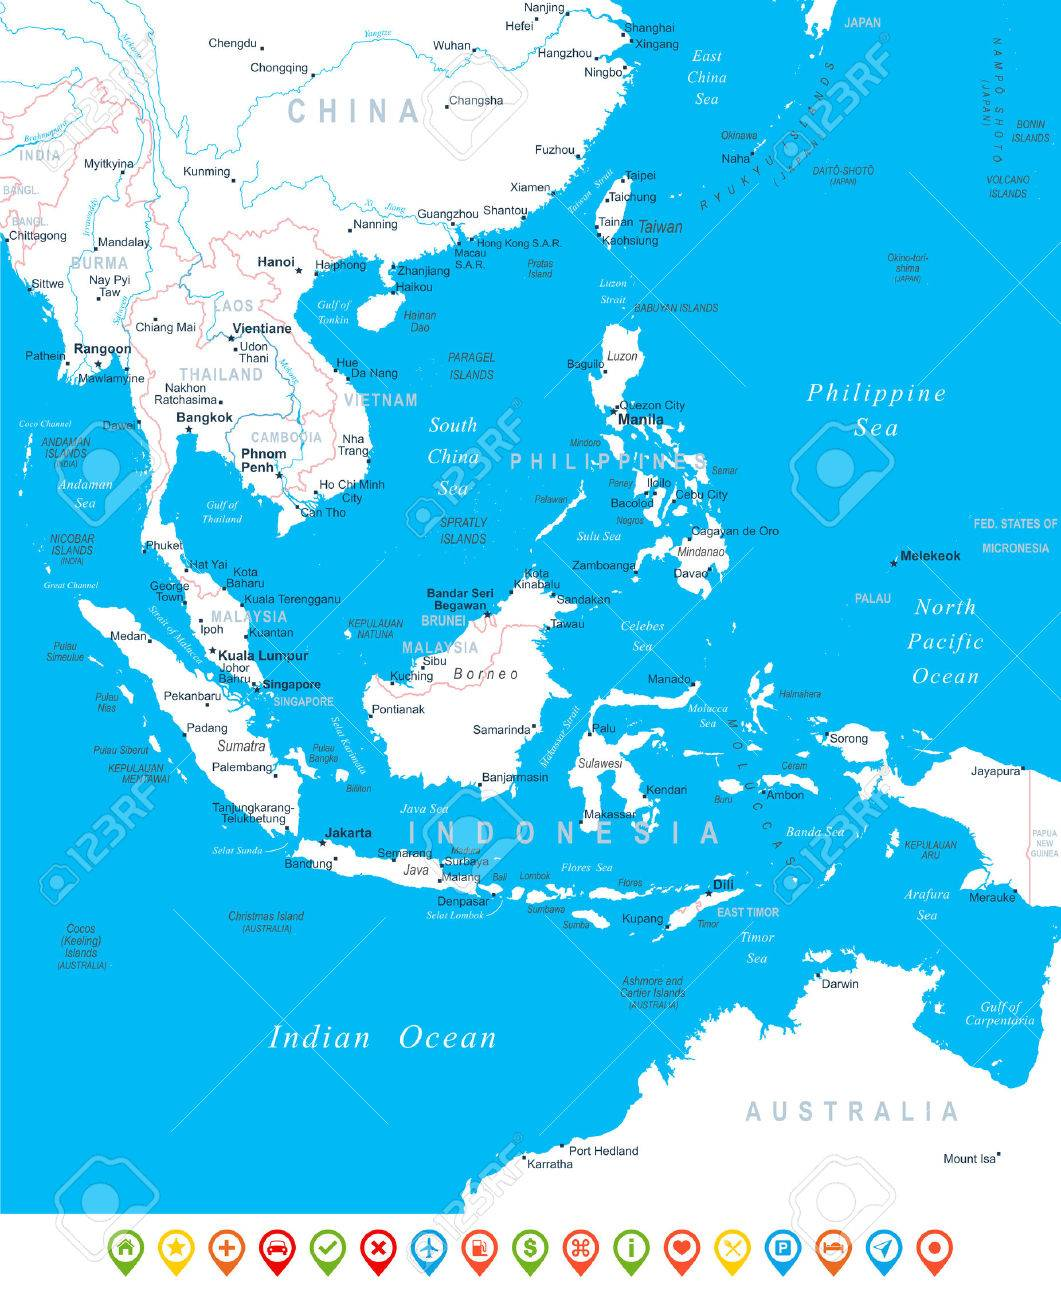 Southeast Asia Map Navigation Icons Illustration Royalty Free